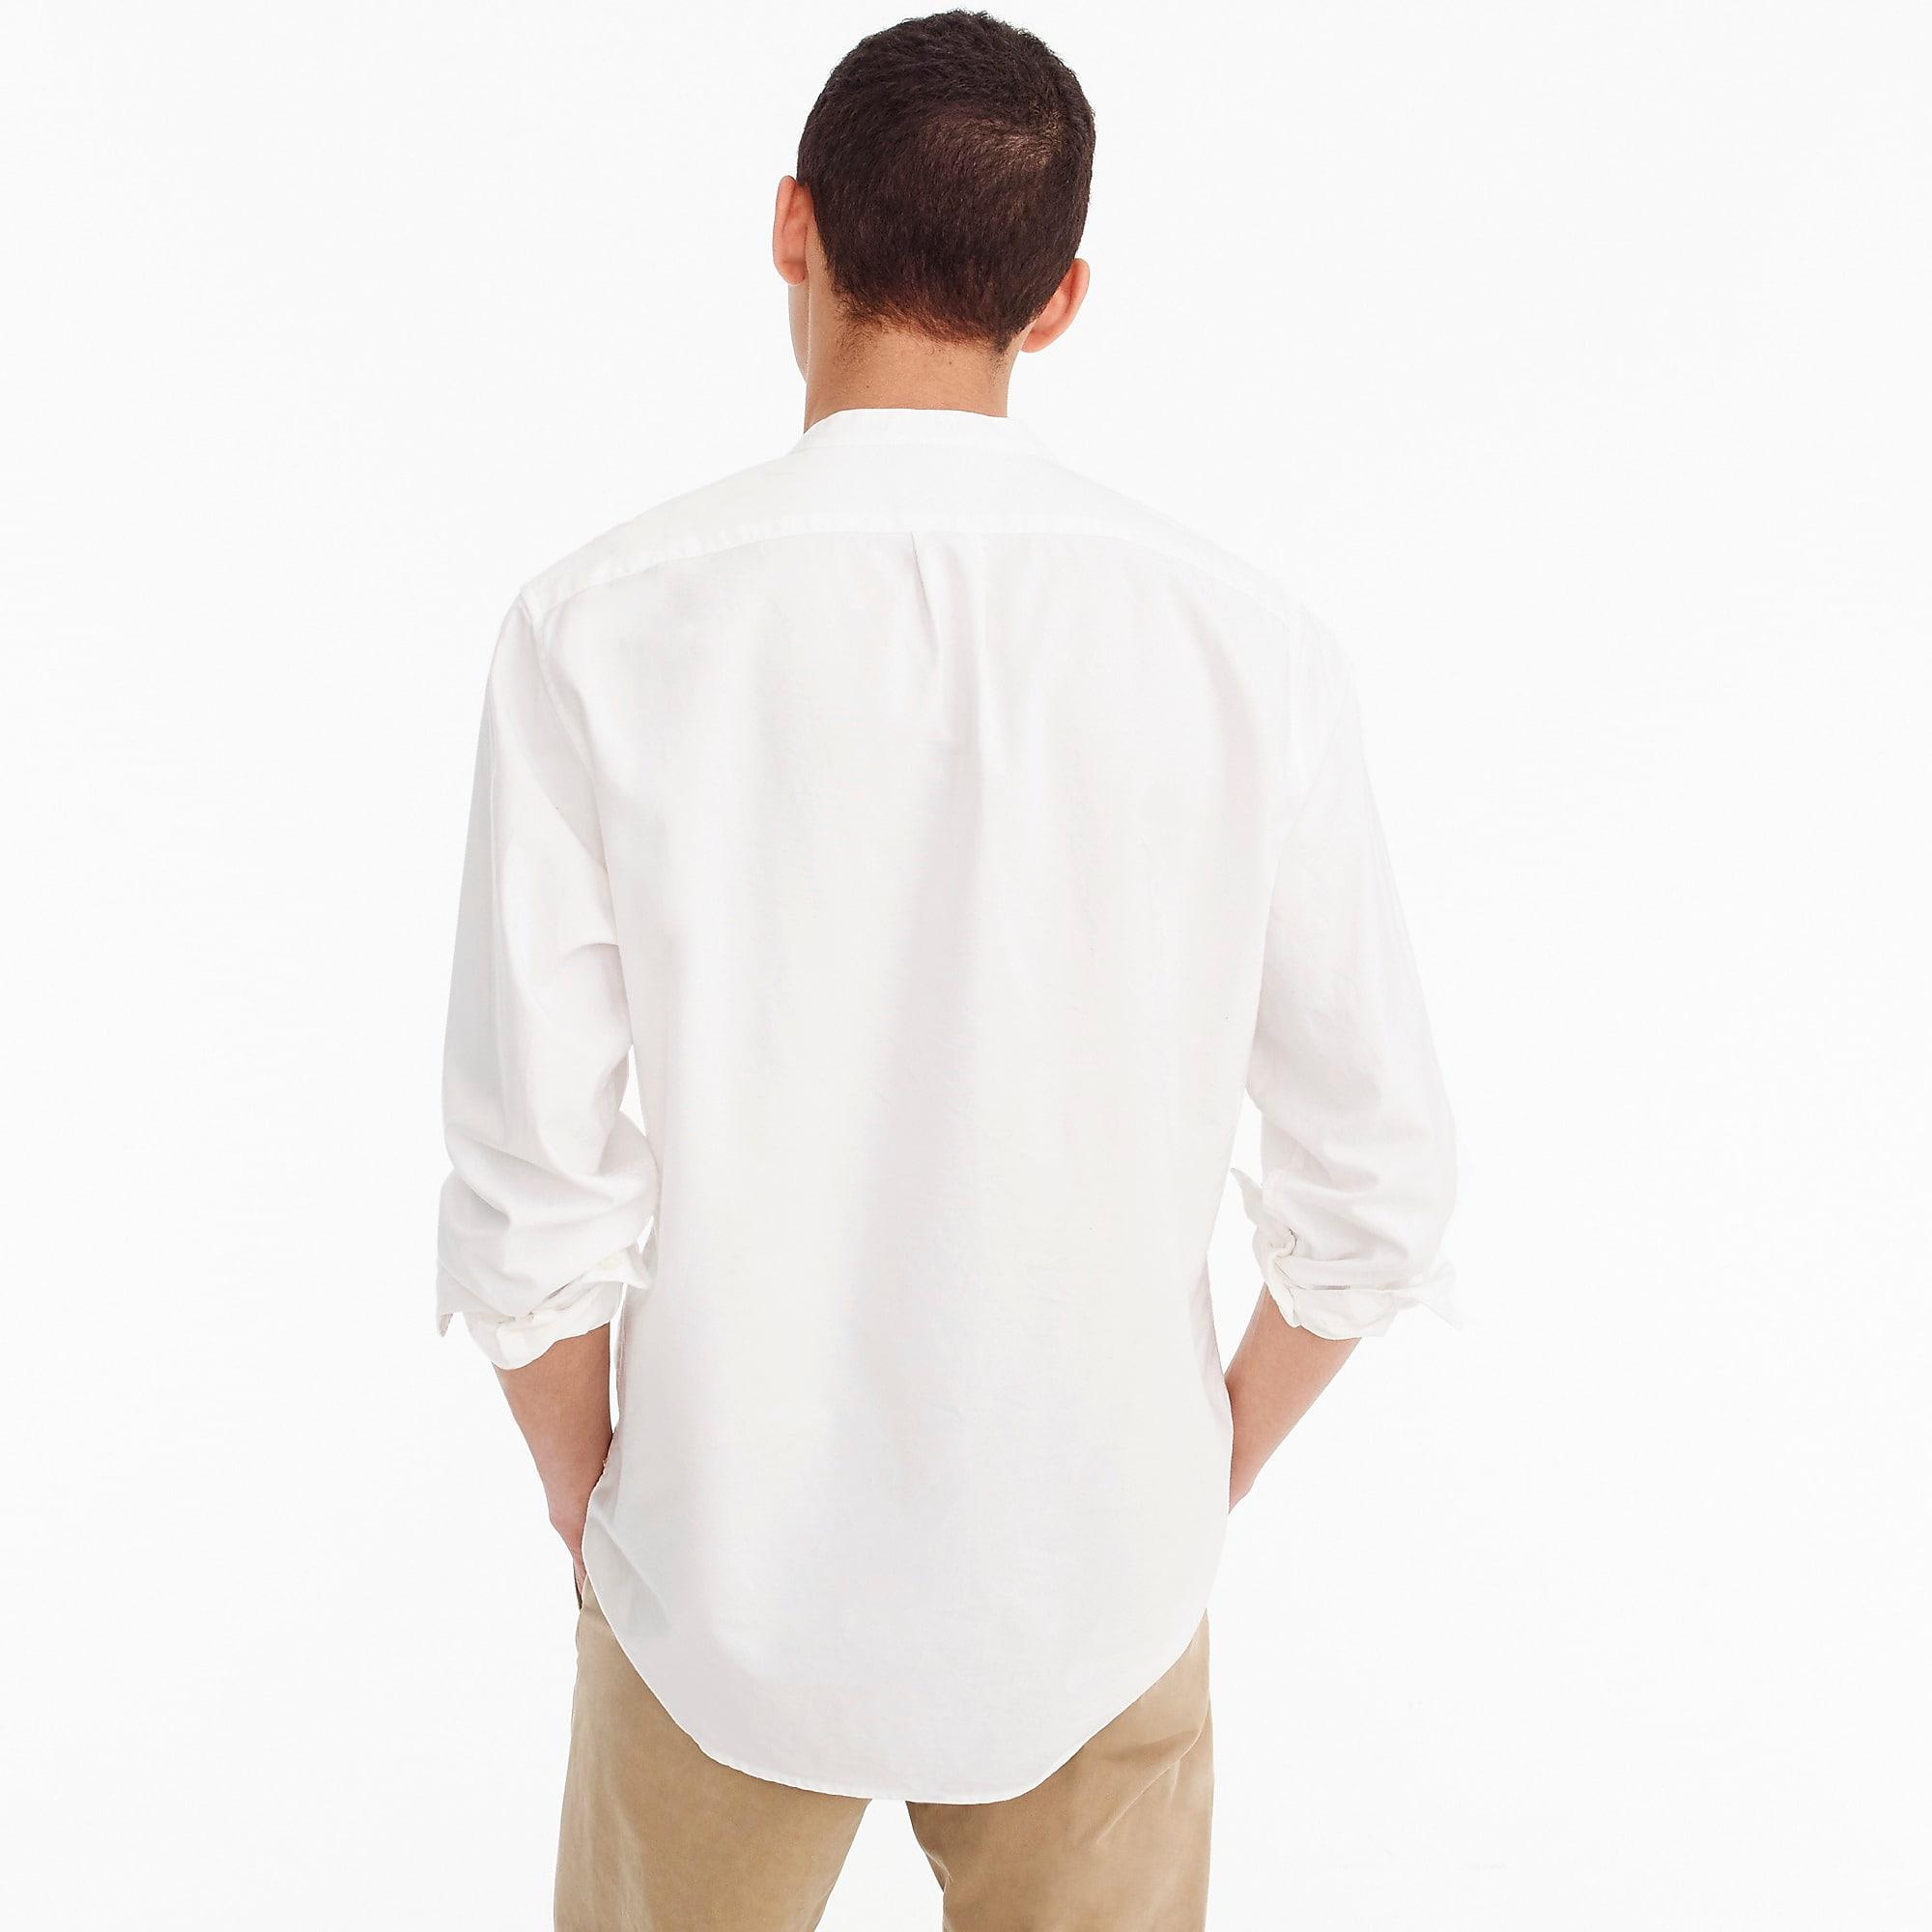 ee5df5d3c0739 J.Crew - White Band-collar American Pima Cotton Oxford With Mechanical  Stretch for. View fullscreen